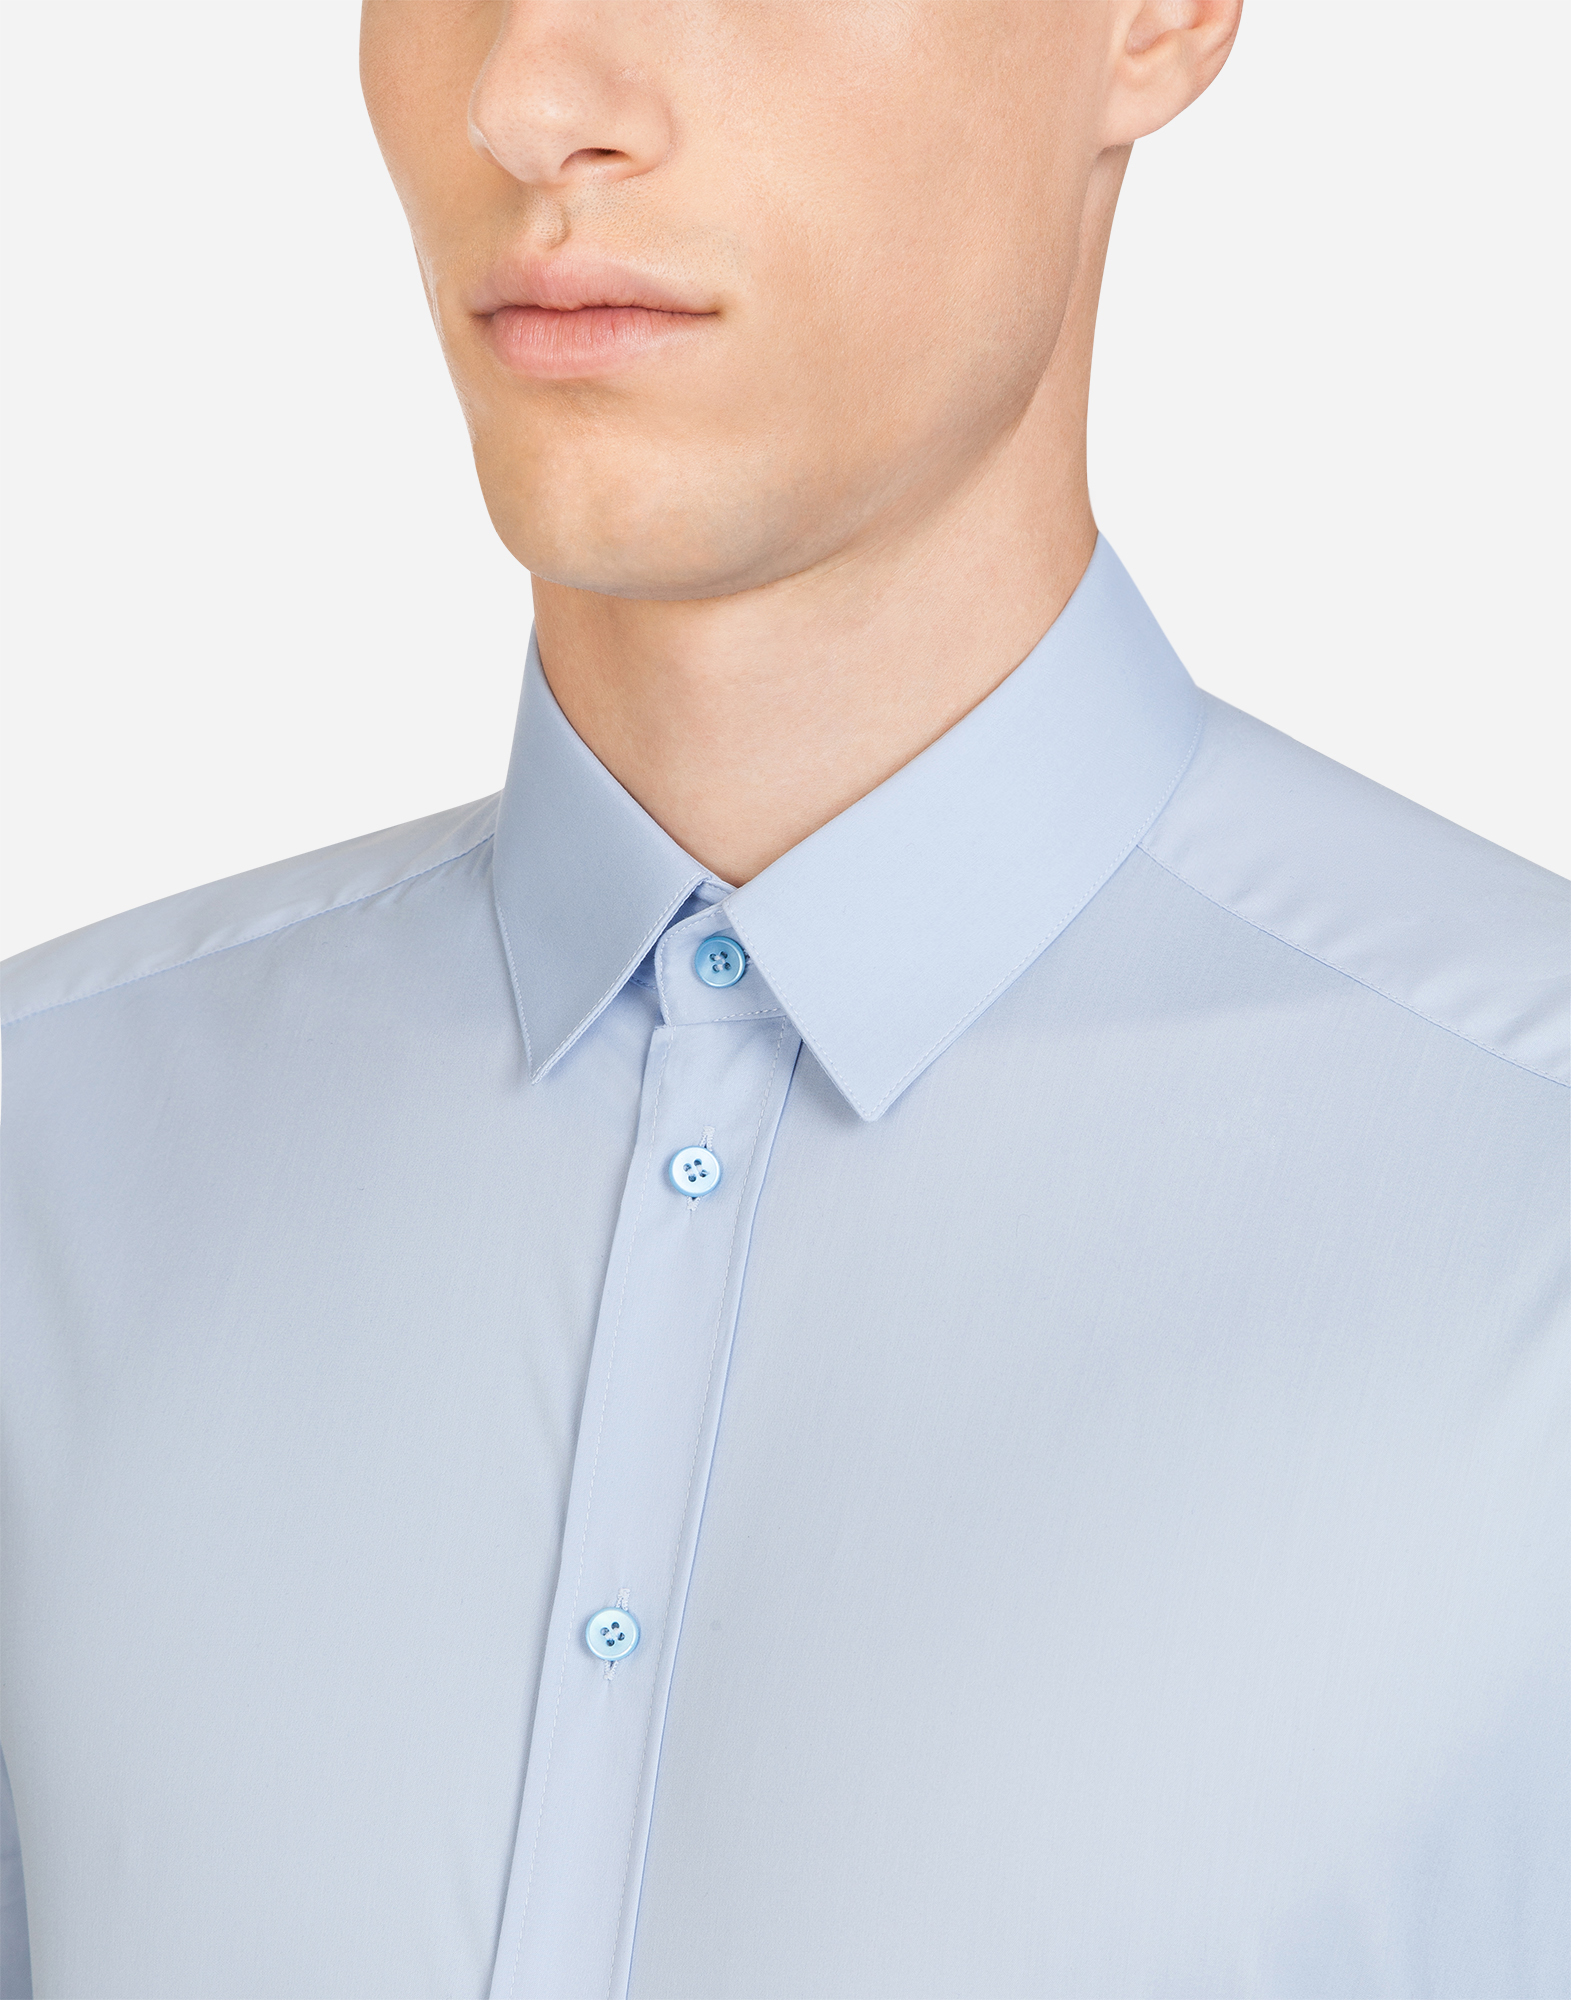 Dolce&Gabbana GOLD FIT SHIRT IN STRETCH COTTON